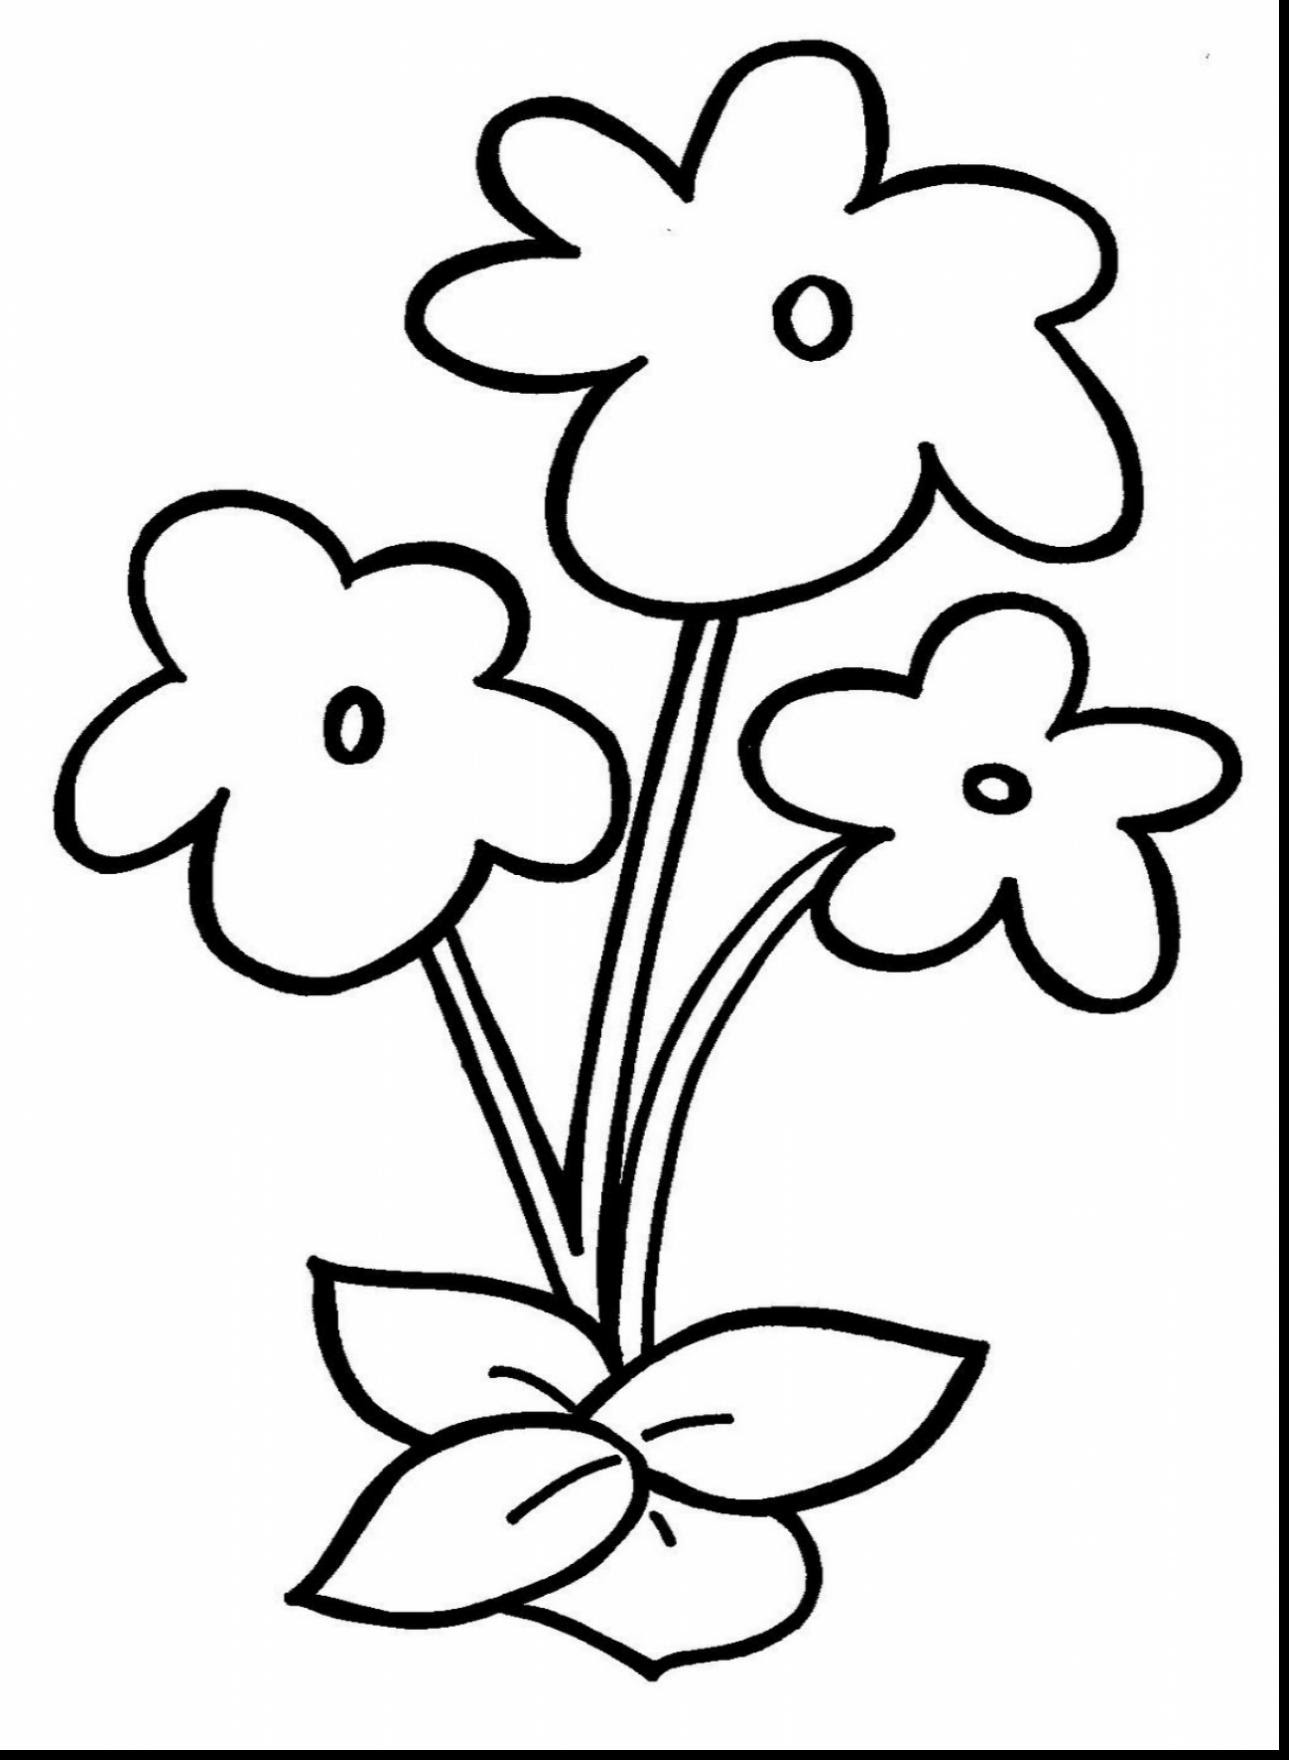 5500 Top Coloring Pages Flower Printable Download Free Images